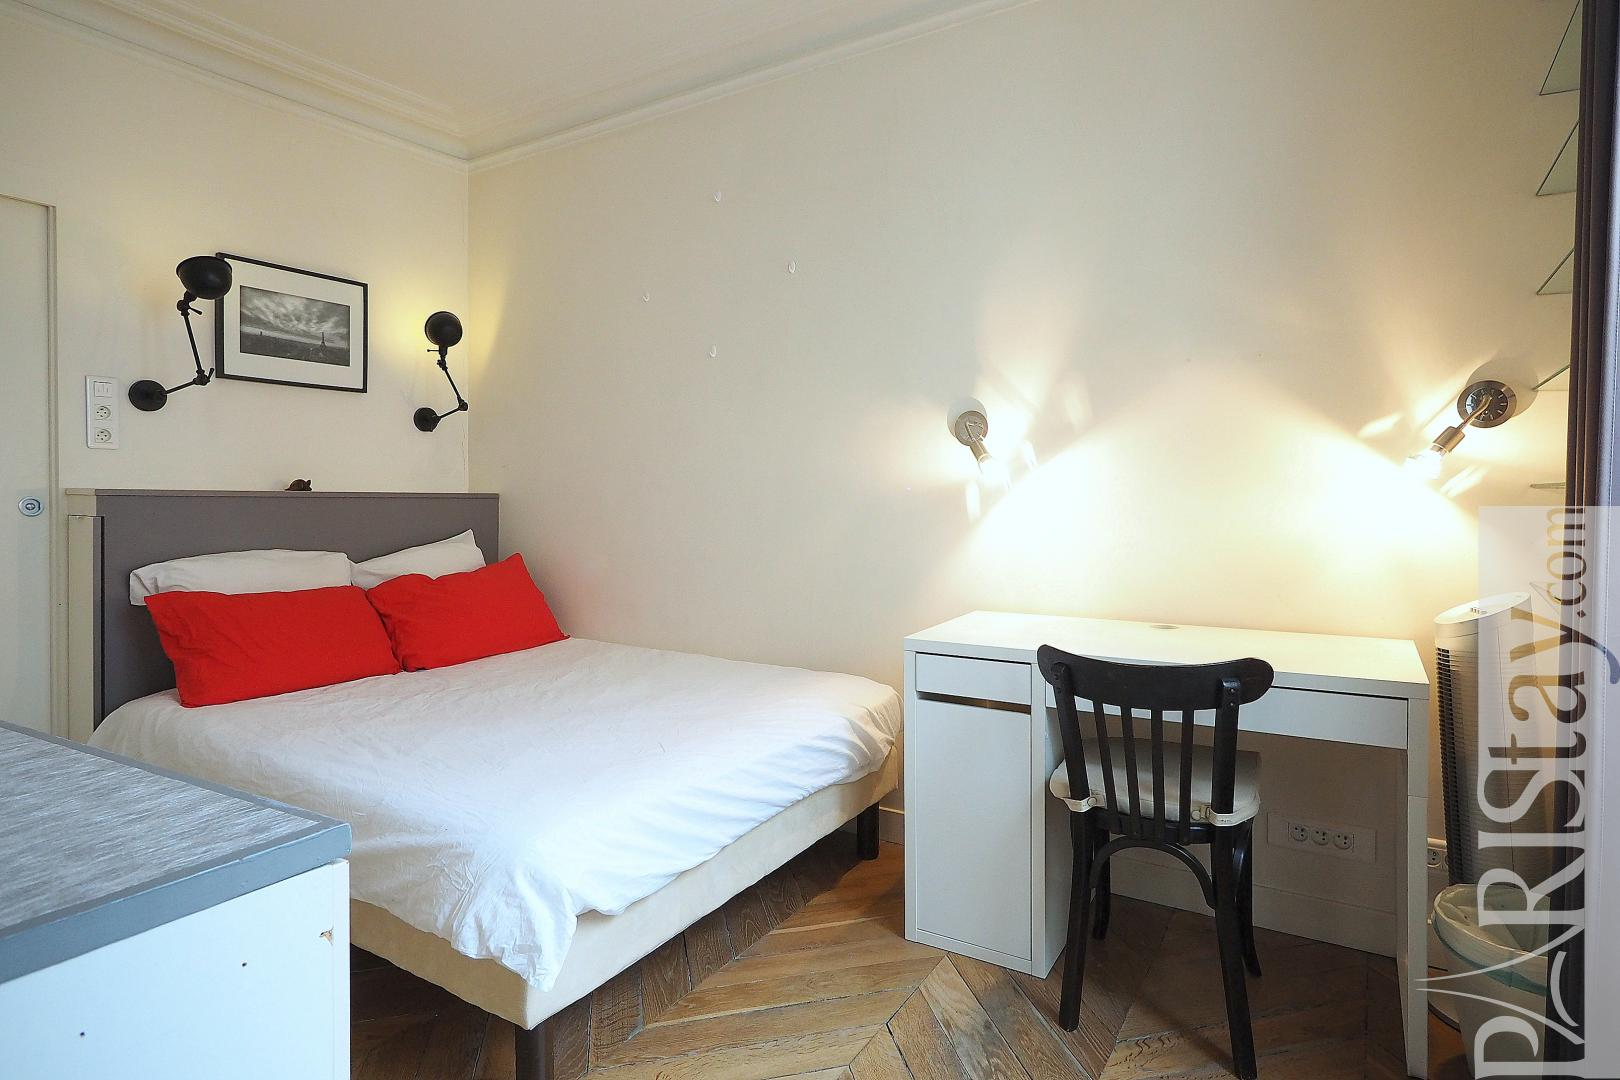 Appartement meuble a louer a paris t2 montorgueil for Appartement a louer meuble paris